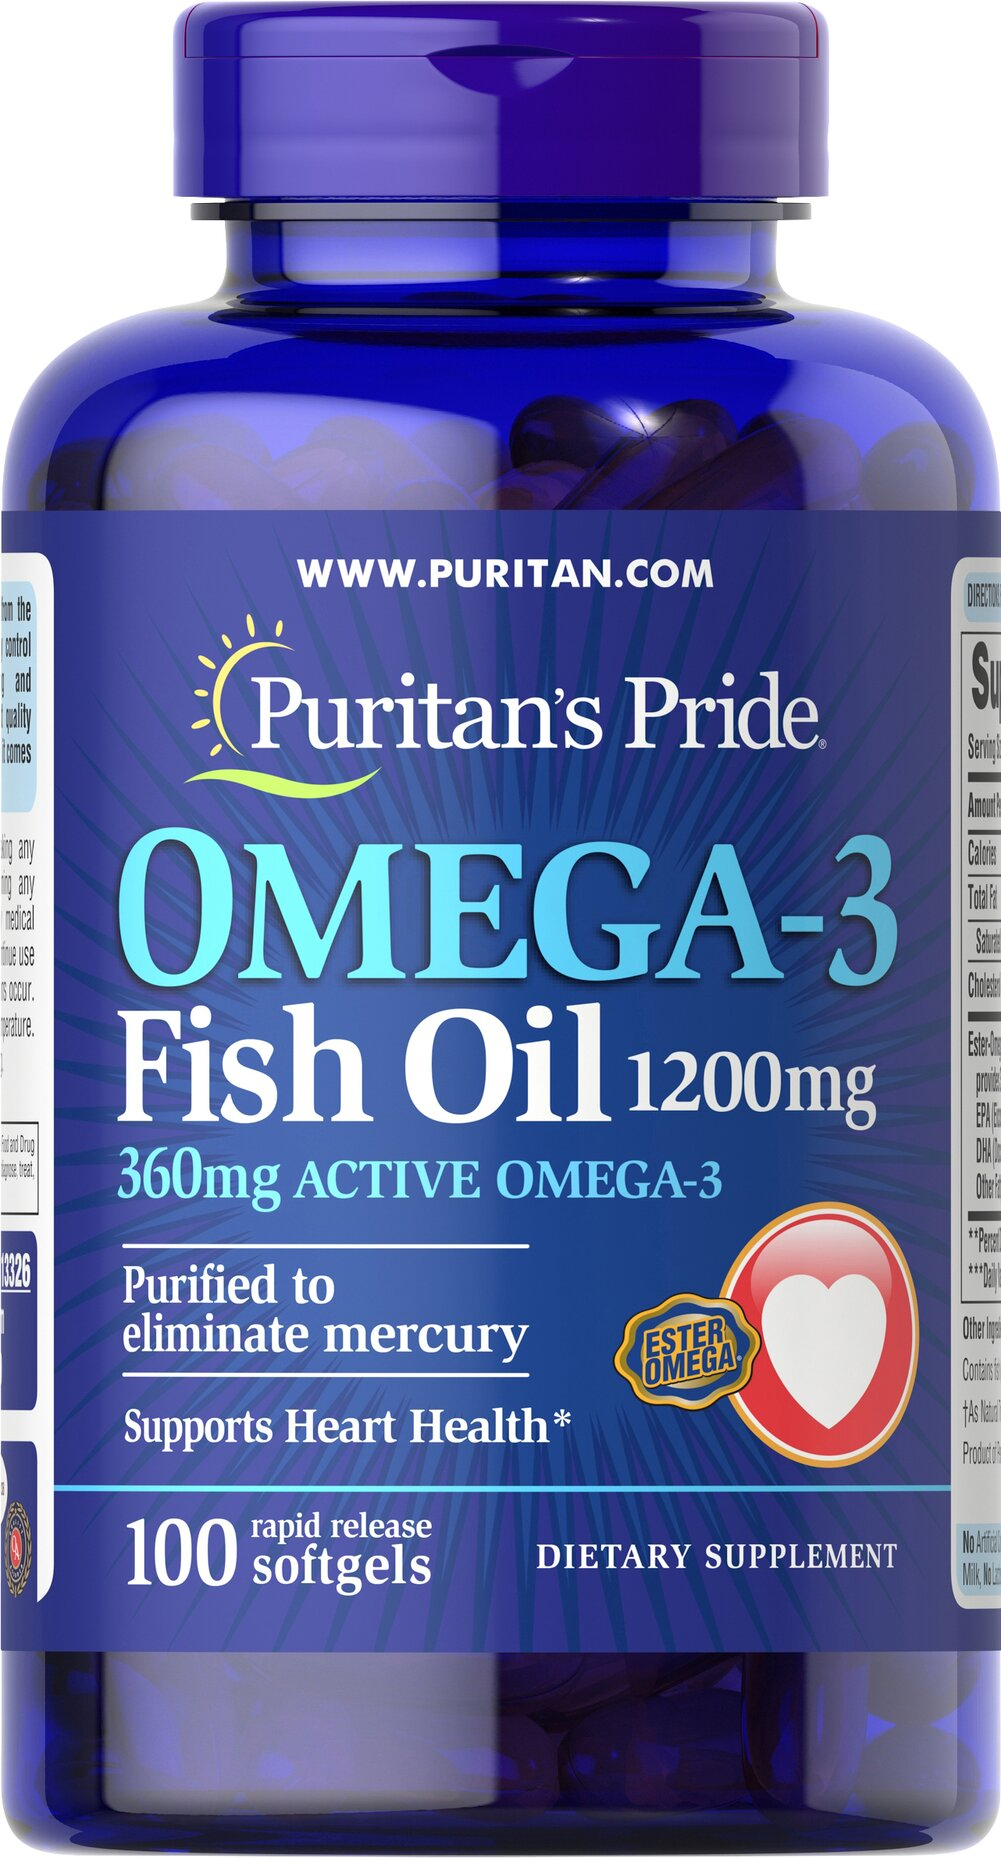 Omega-3 Fish Oil 1200 mg (360 mg Active Omega-3)  100 Softgels 1200 mg $11.59